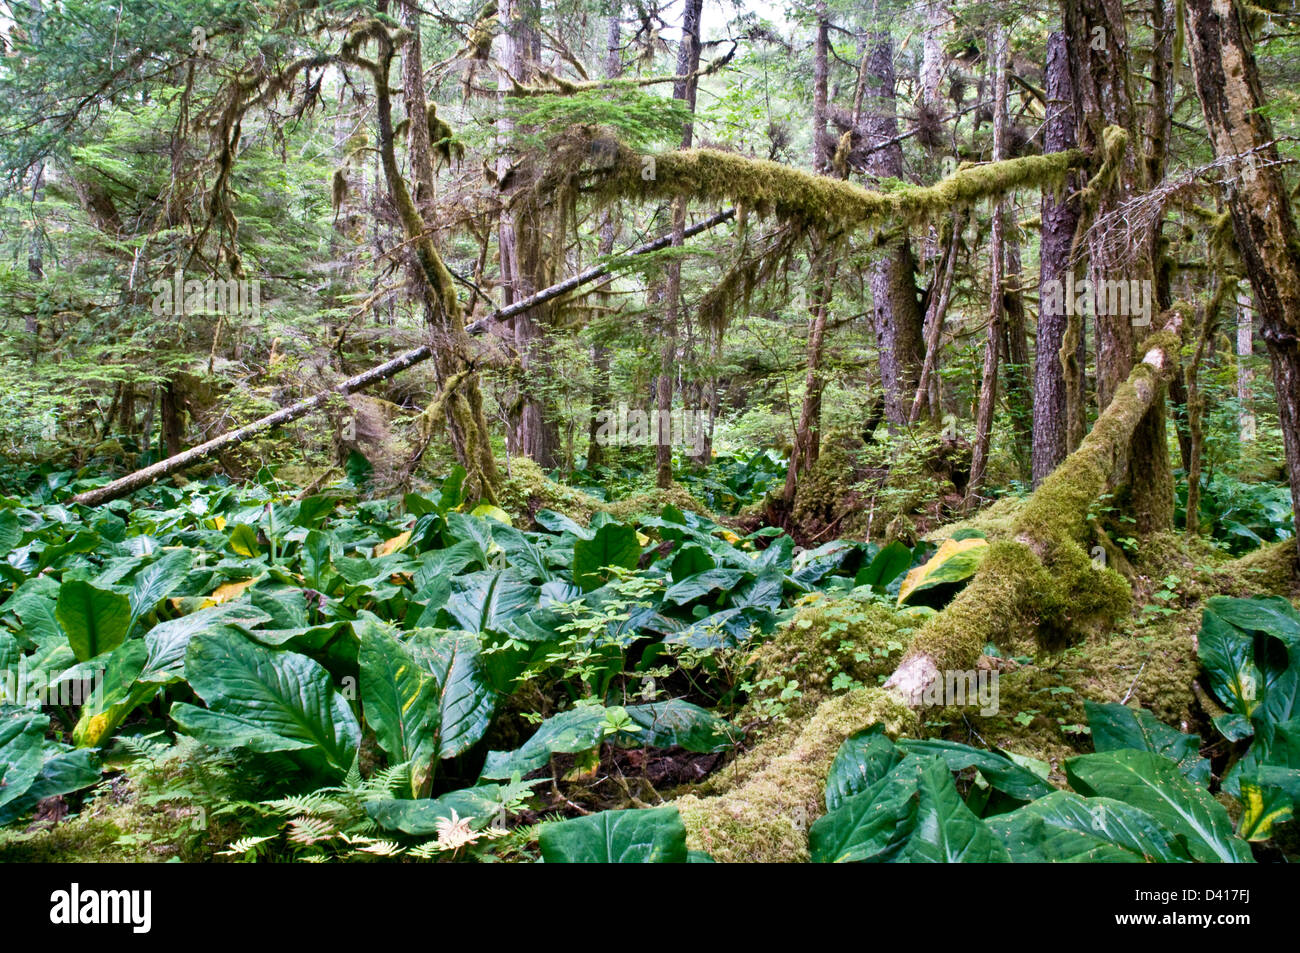 heavy undergrowth stock photos \u0026 heavy undergrowth stock images alamy Strawberry Diagram thick forest and heavy mossy undergrowth in the great bear rainforest, bella coola valley,